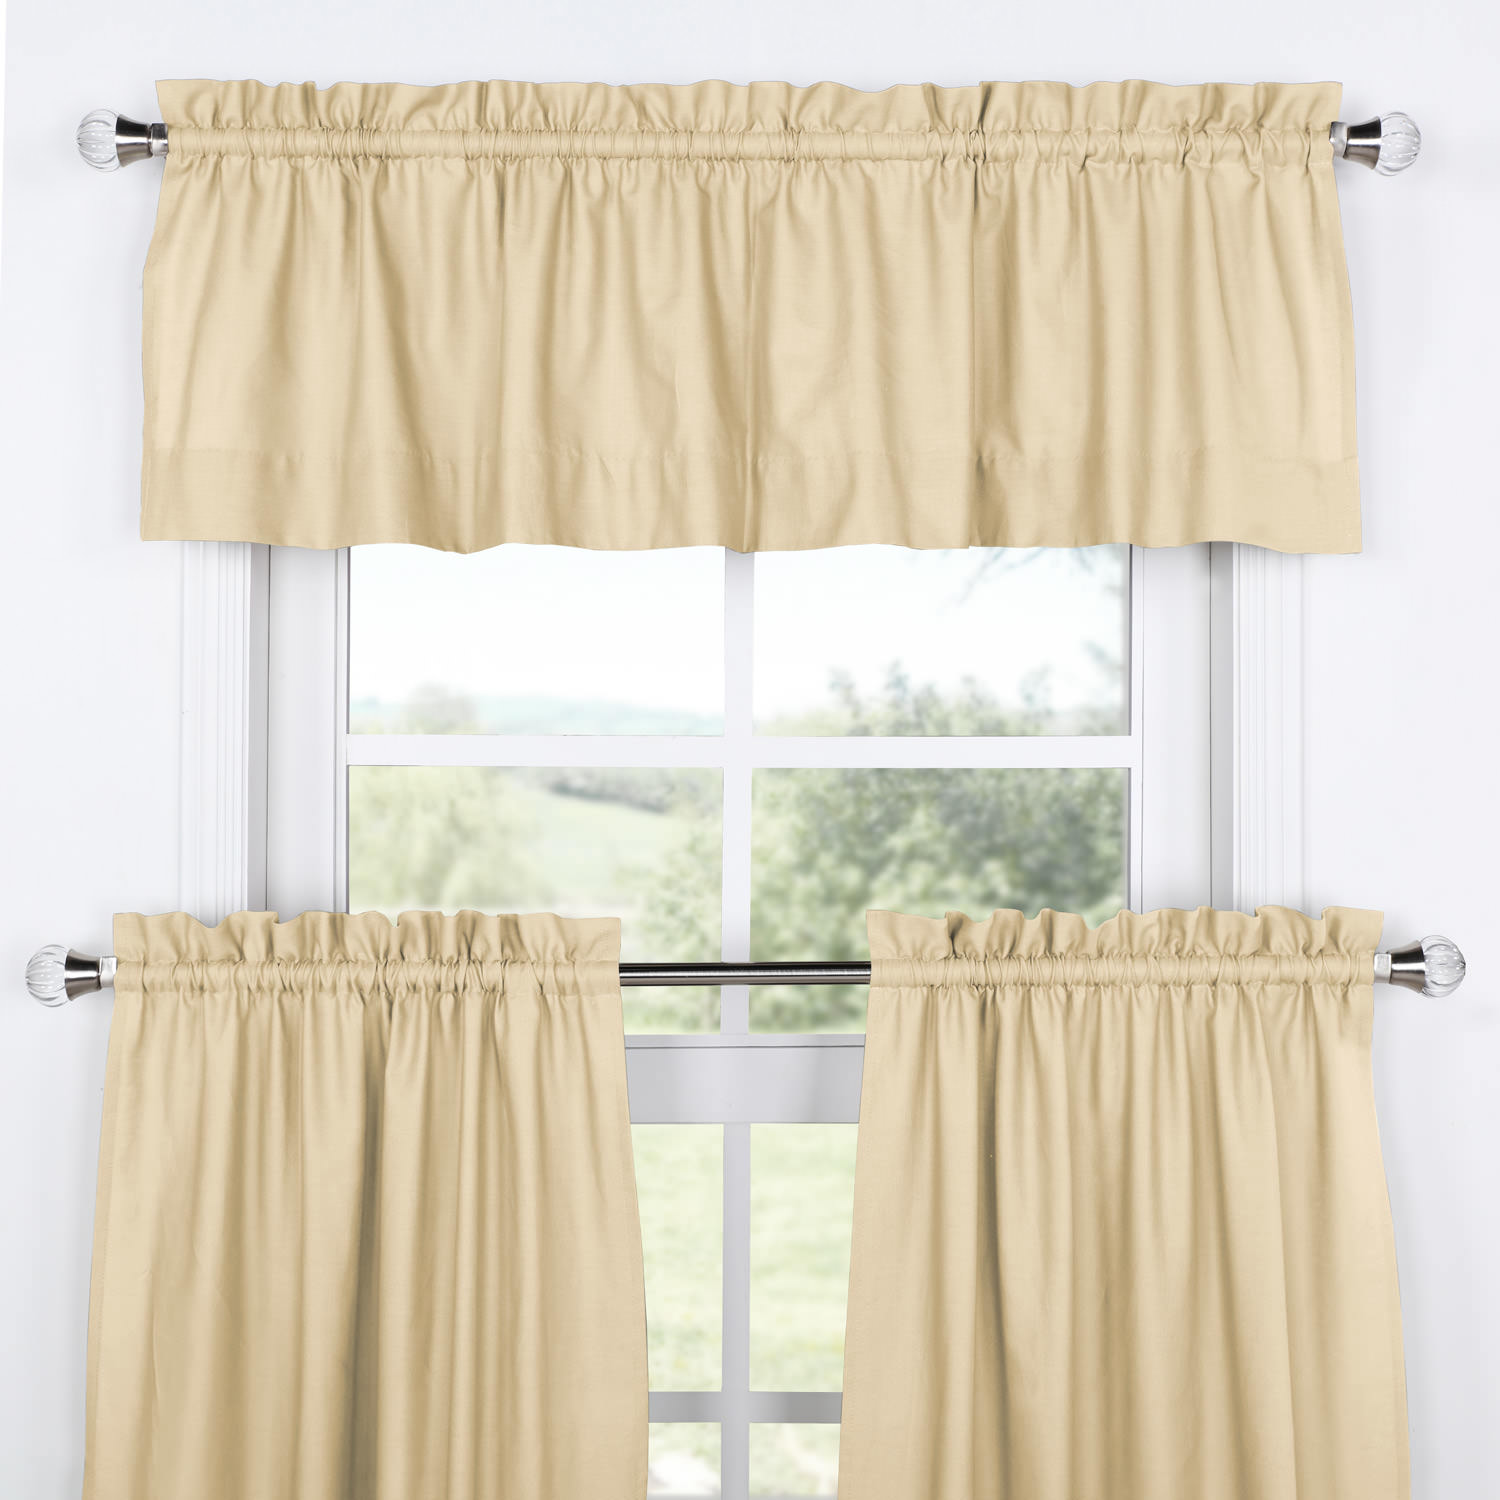 Shaker Beige Solid Cotton Kitchen Tier Curtain & Valance Set (3pc)